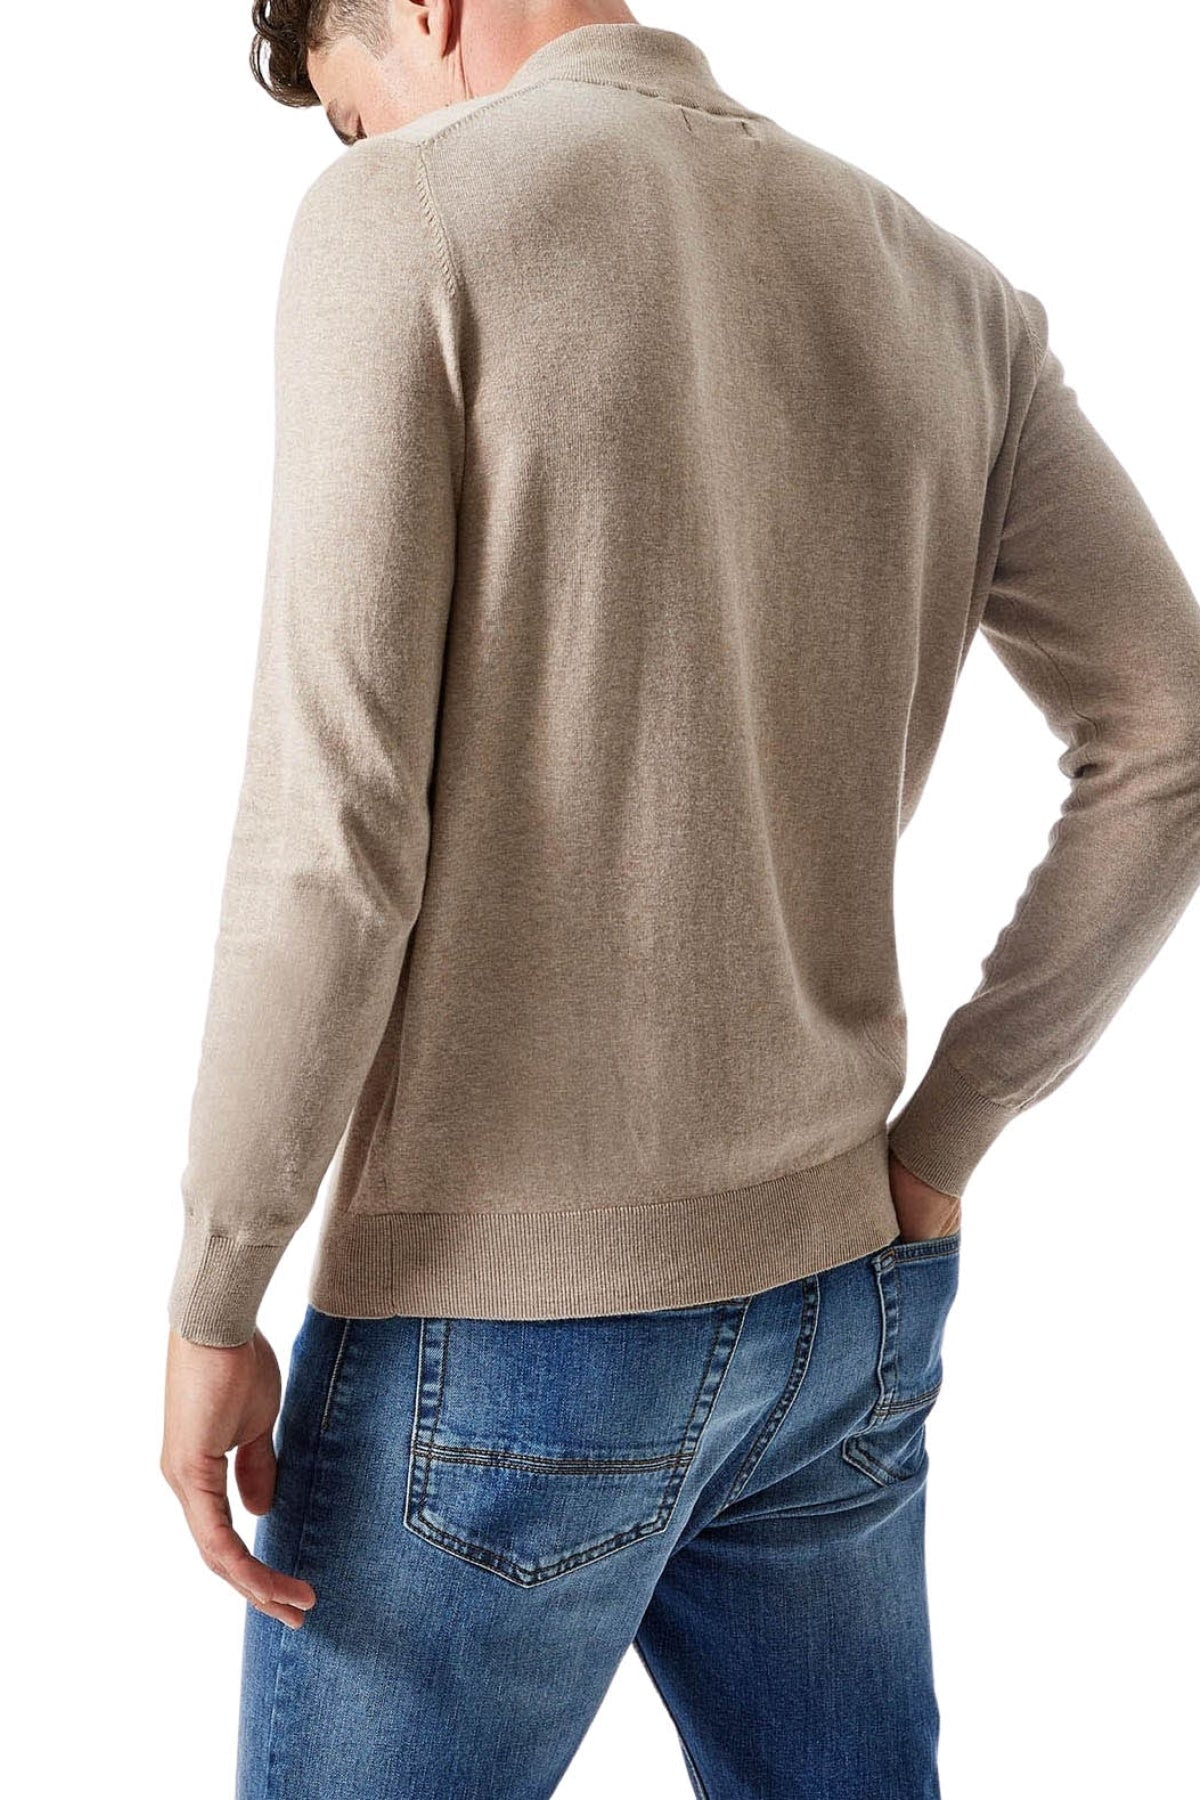 Burton Cotton Quarter Zip Jumper | M / Natural Secret Label